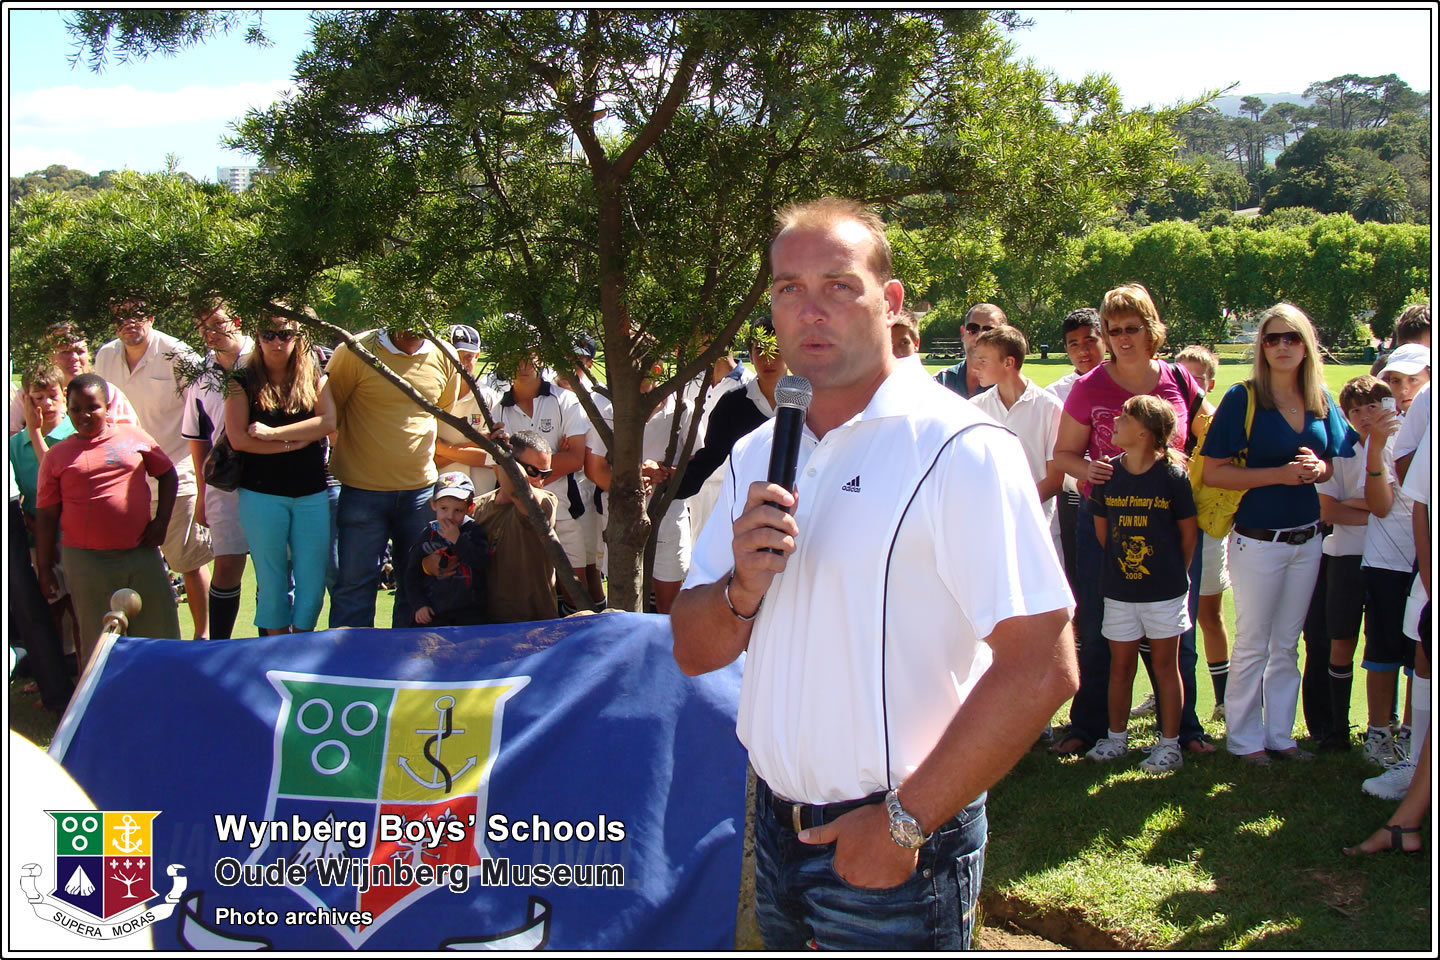 The Jacques Kallis Oval Naming Ceremony